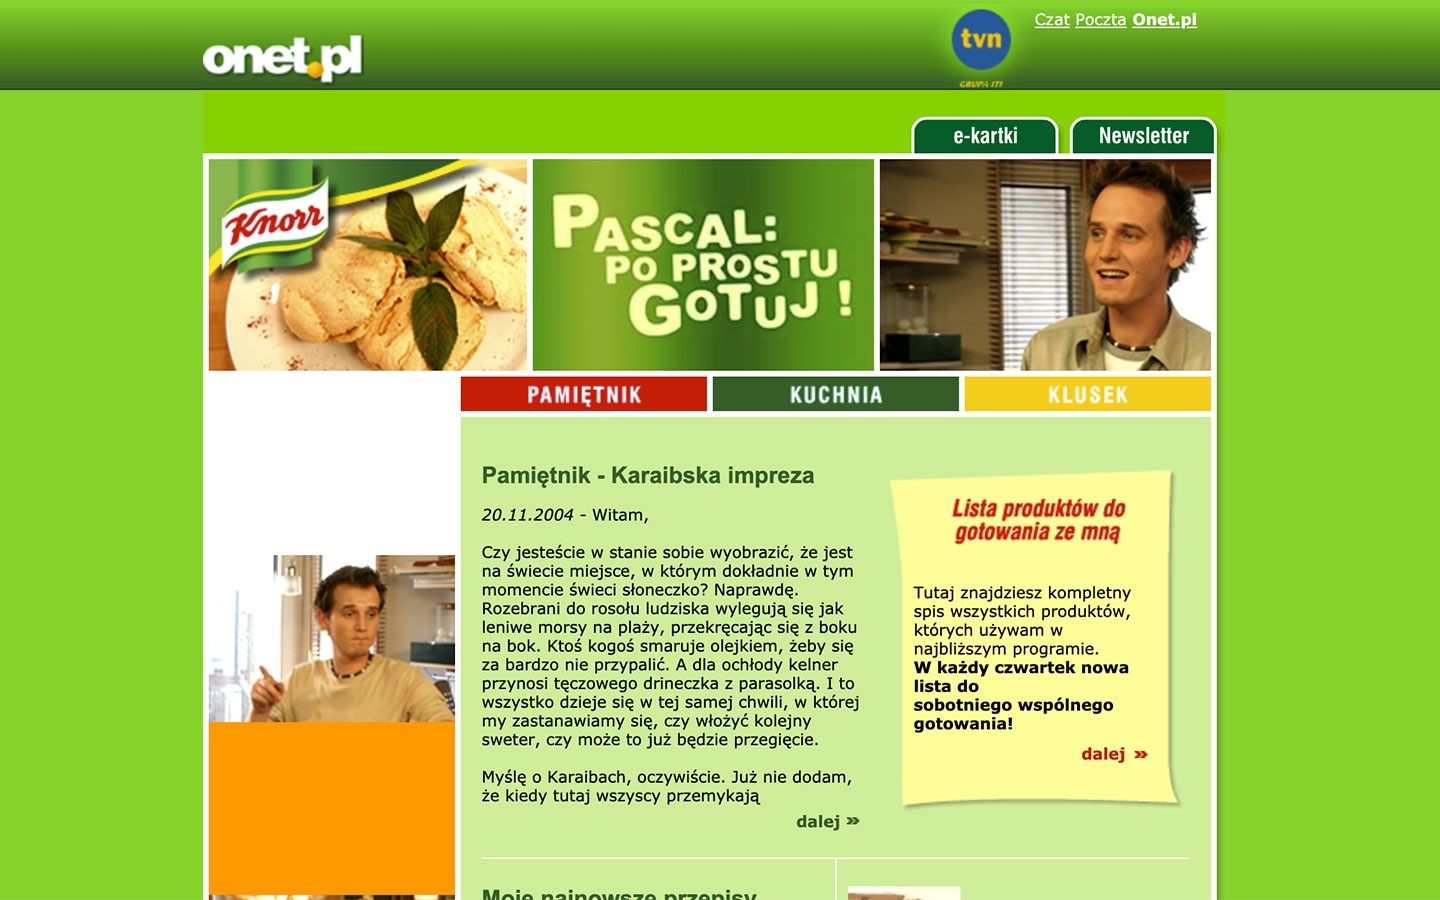 Pascal: Po Prostu Gotuj! | poprostugotuj.onet.pl | 2004 (Screen Only 01) © echonet communication